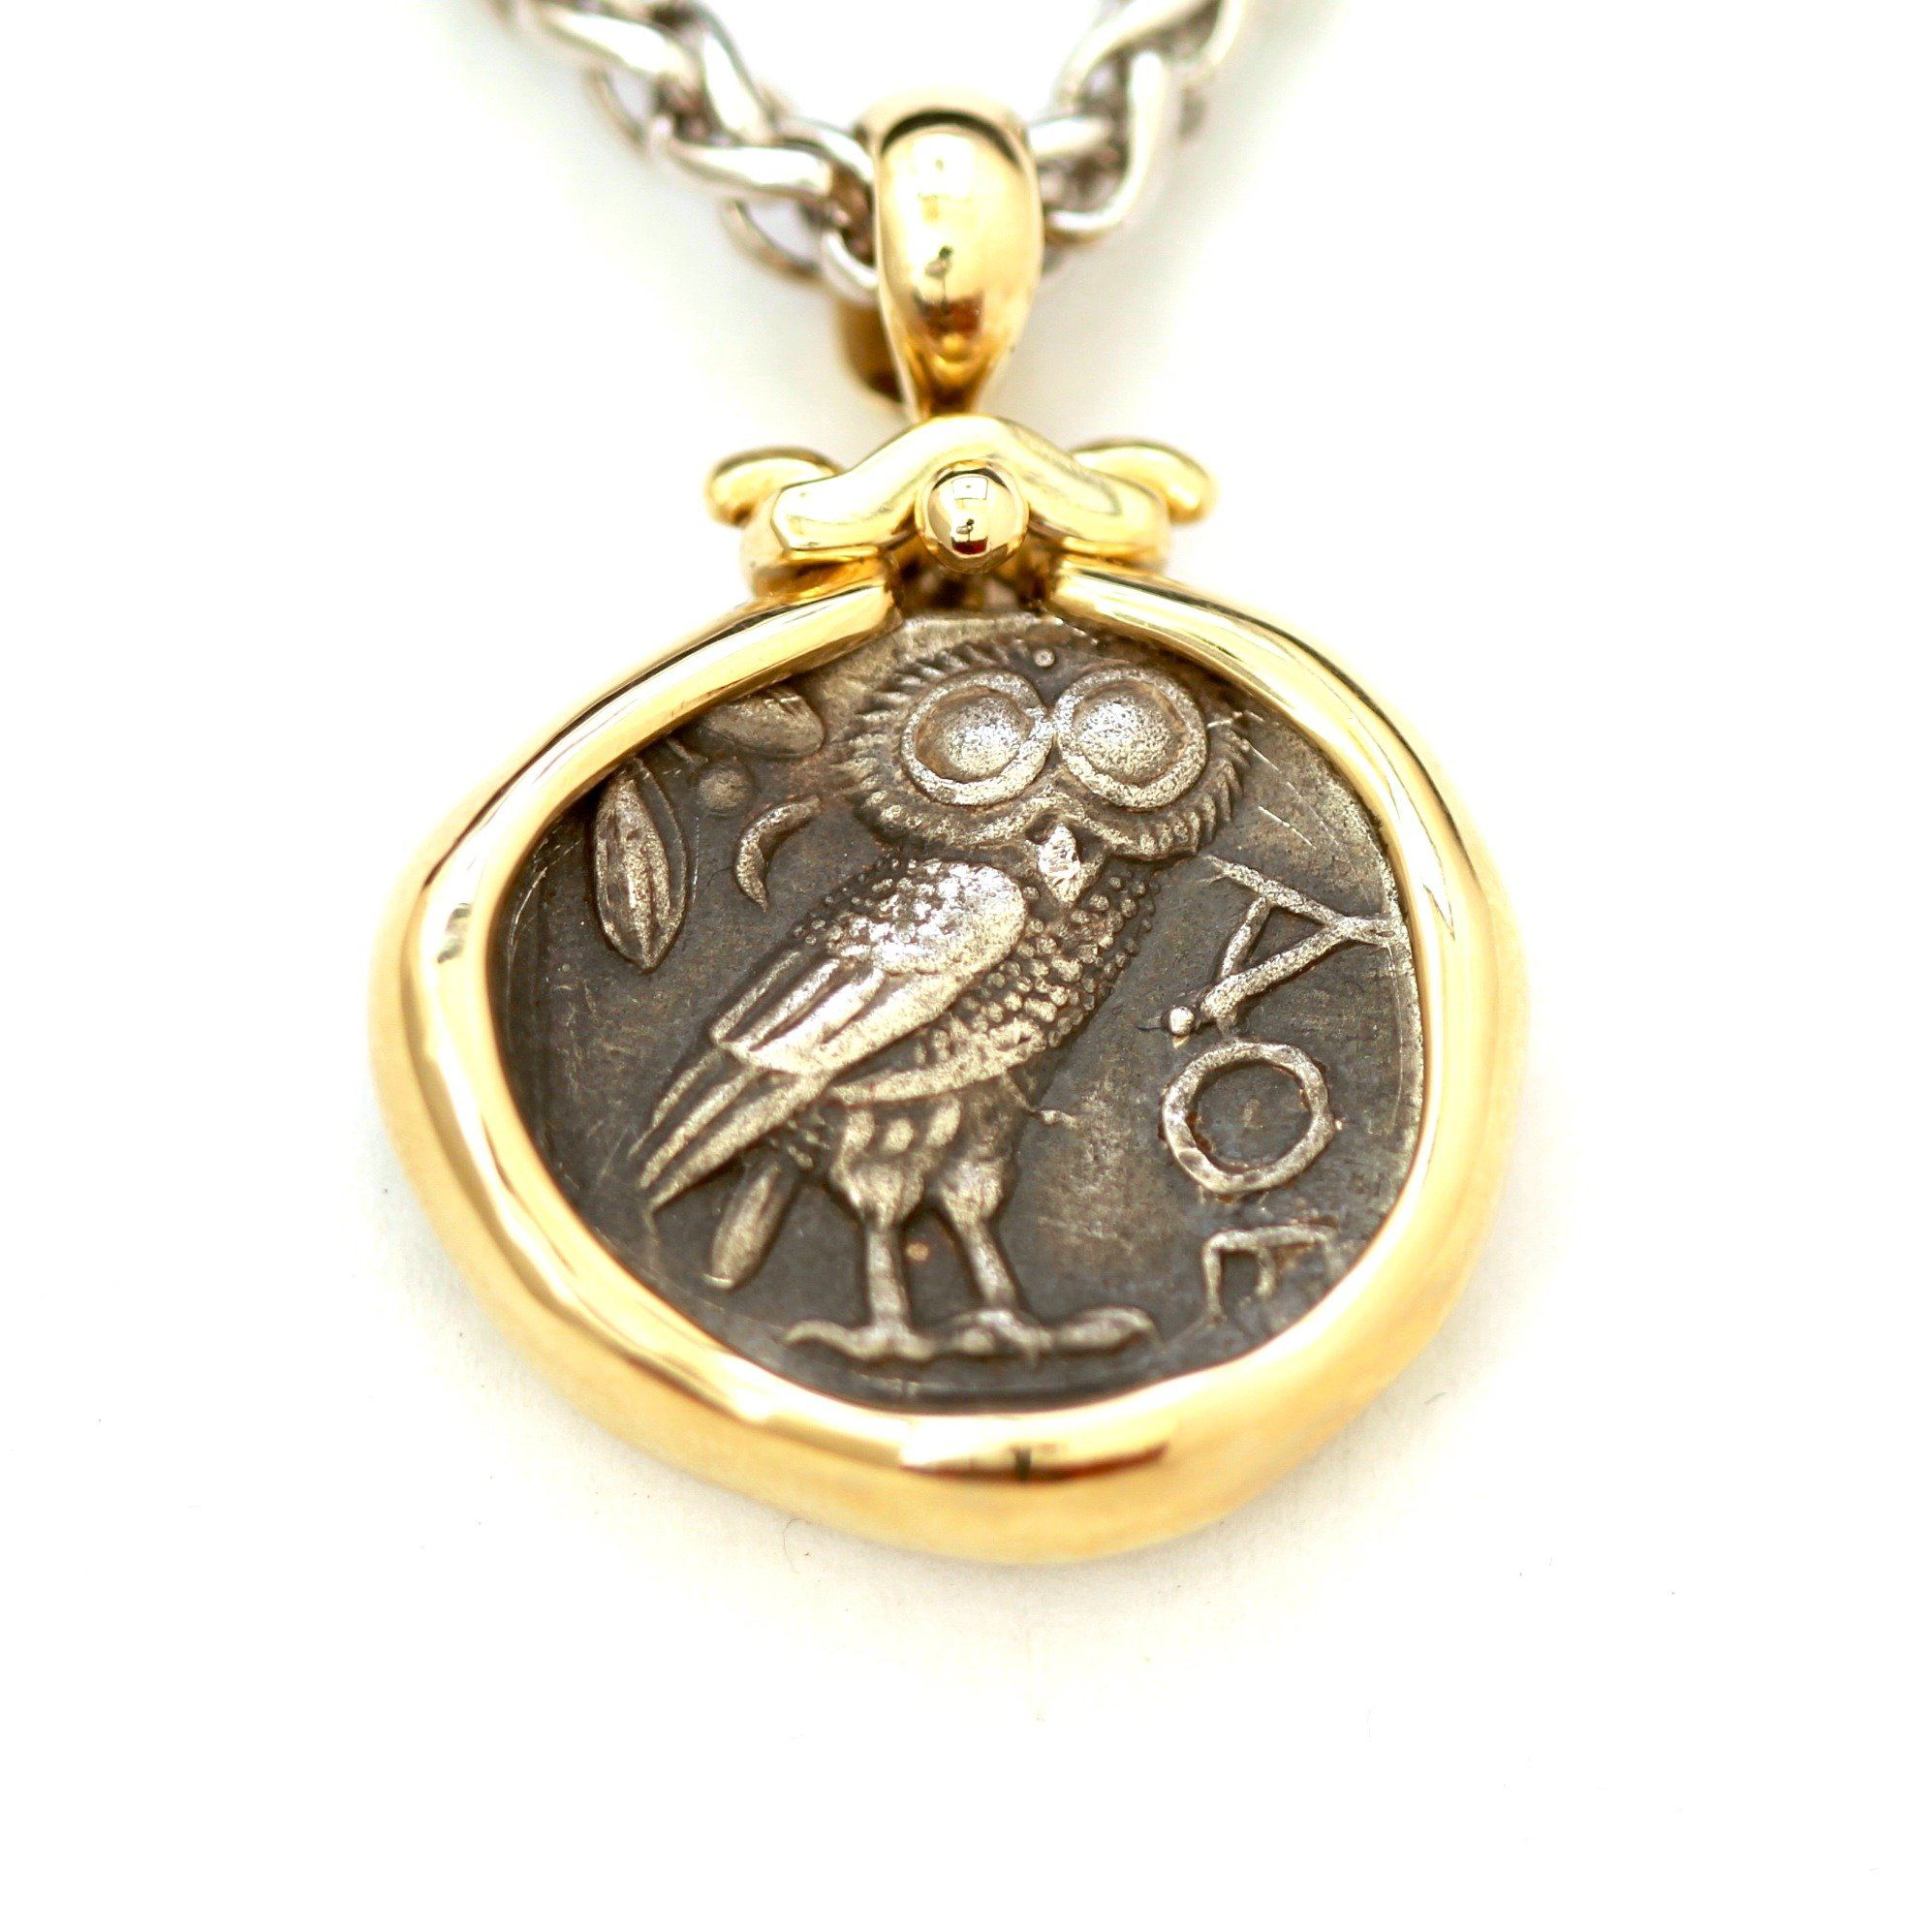 14K Pendant, Sterling Silver Chain, Greek Athena Owl, Certificate ID13104 - Erez Ancient Coin Jewelry, ancient coin jewelry, men jewelry, genuine ancient coins, made in the US